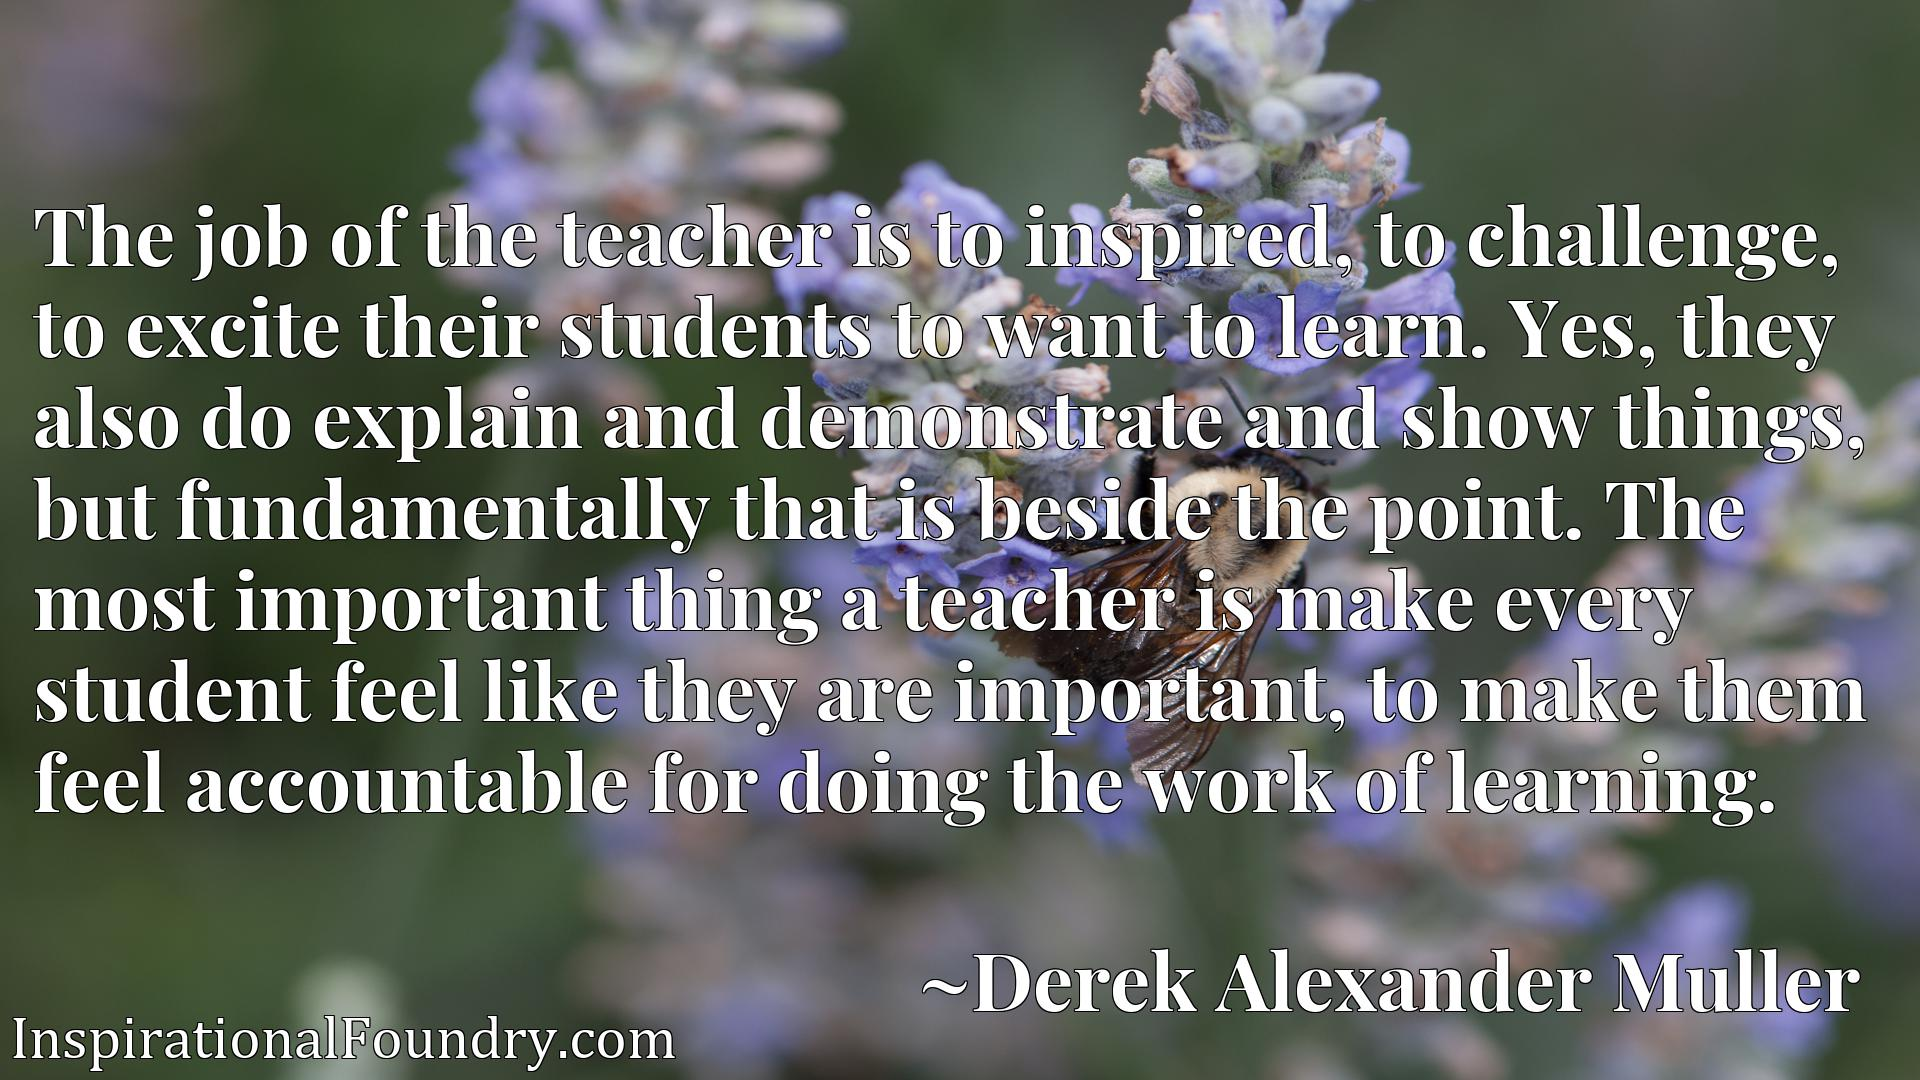 The job of the teacher is to inspired, to challenge, to excite their students to want to learn. Yes, they also do explain and demonstrate and show things, but fundamentally that is beside the point. The most important thing a teacher is make every student feel like they are important, to make them feel accountable for doing the work of learning.